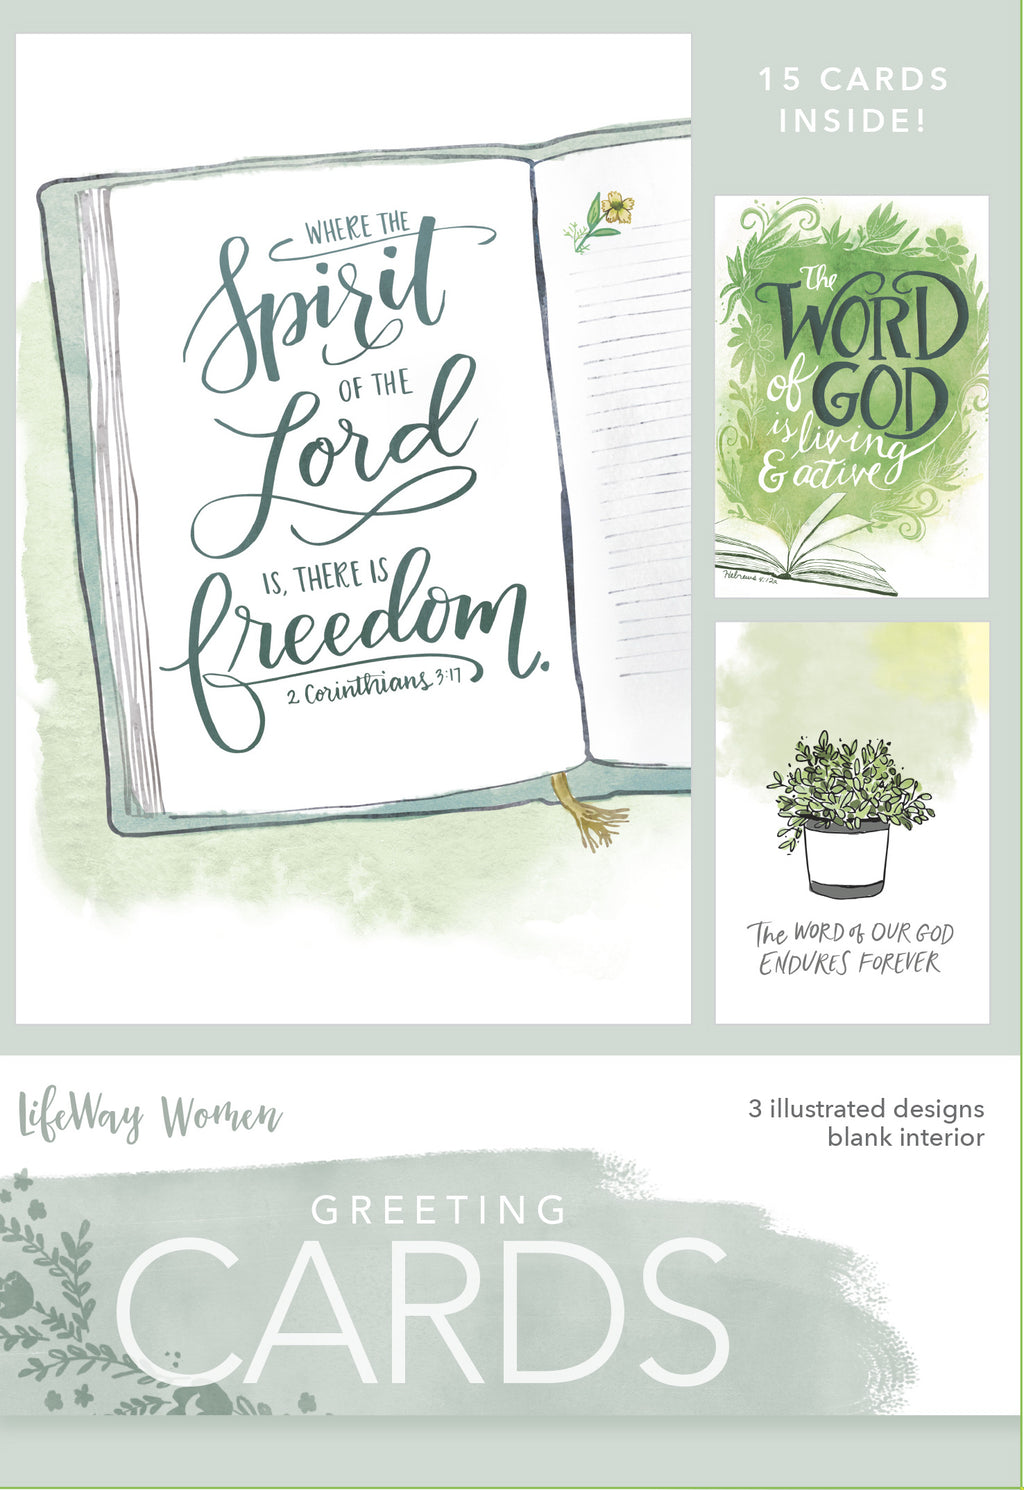 Card-Boxed-Spirit Of The Lord (Box Of 15)